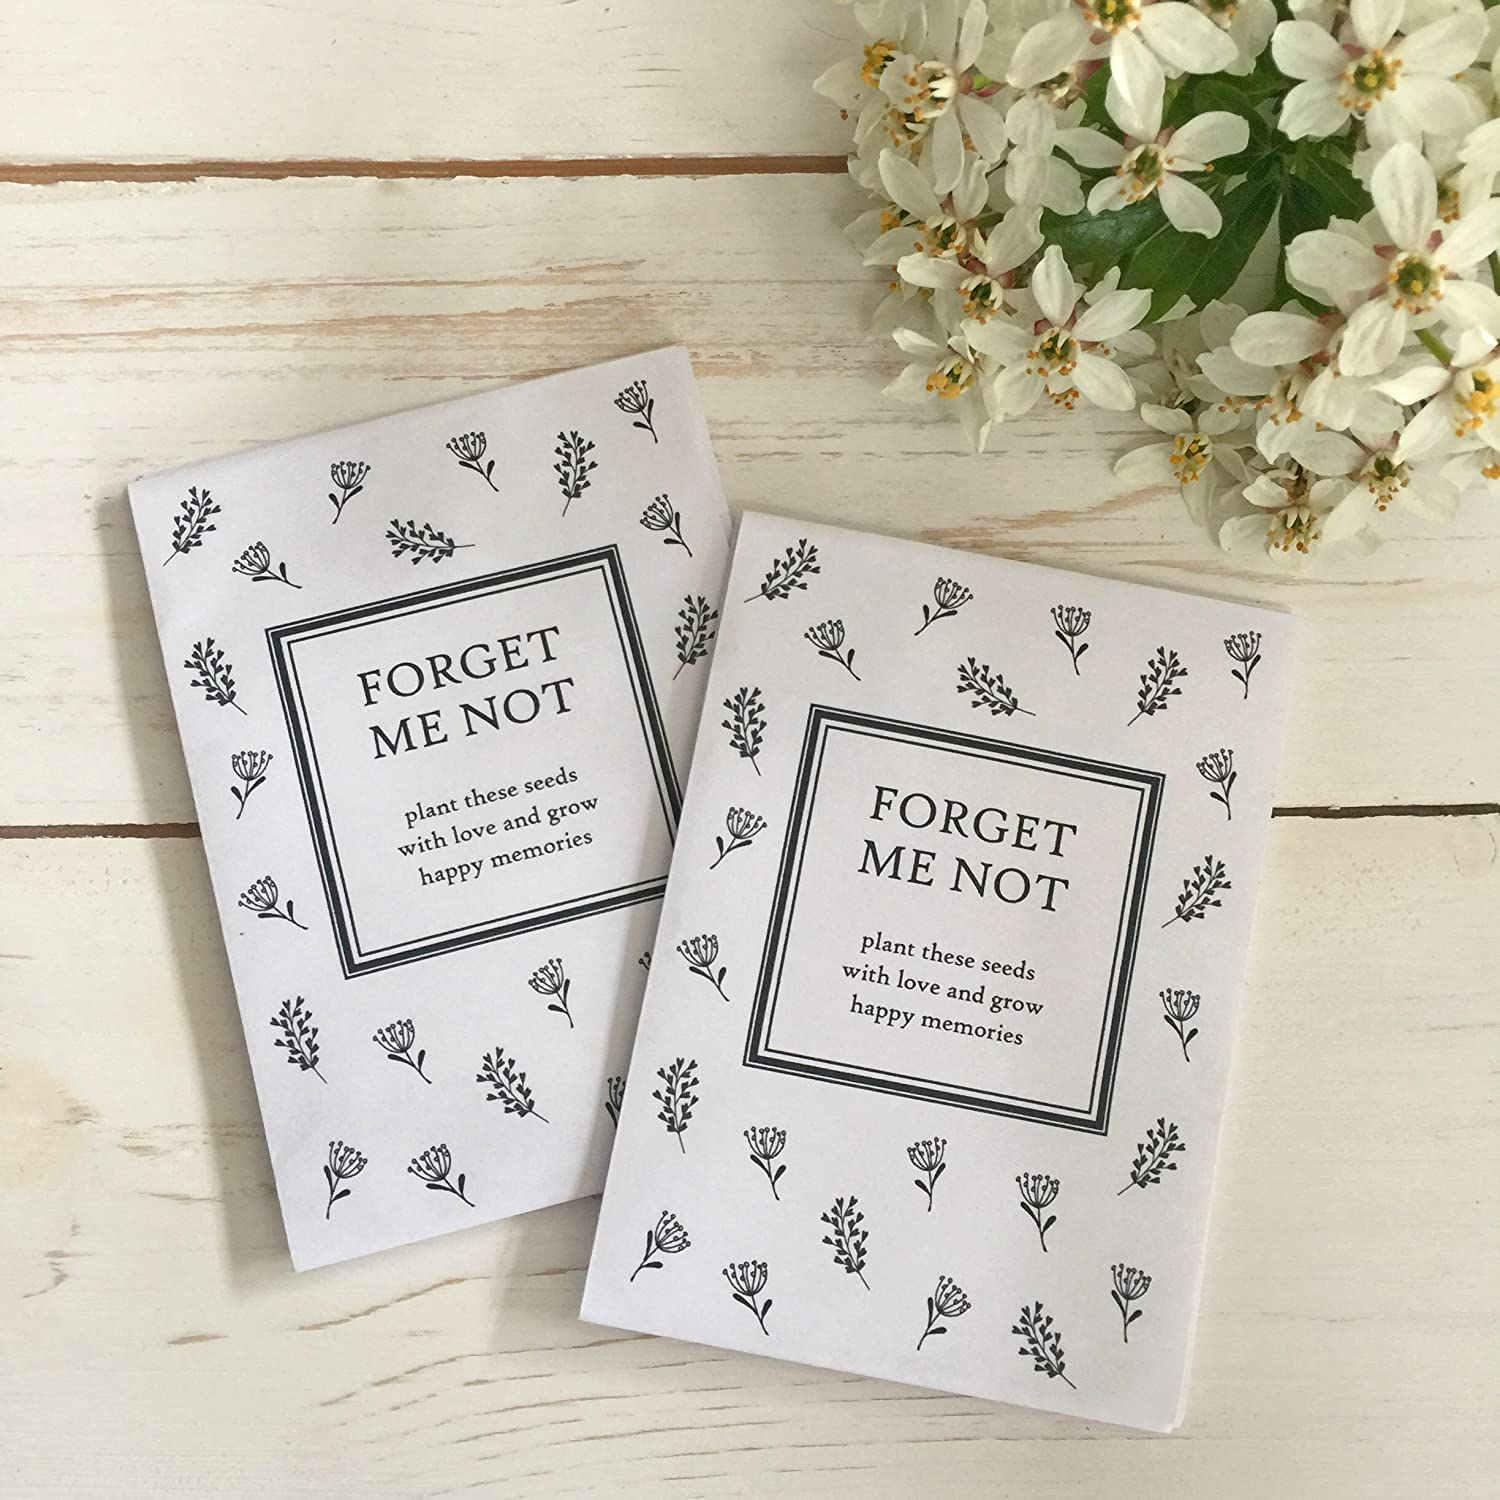 Amazon.com: 25 Unfilled Forget Me Not Seed Packet Funeral Favor ...